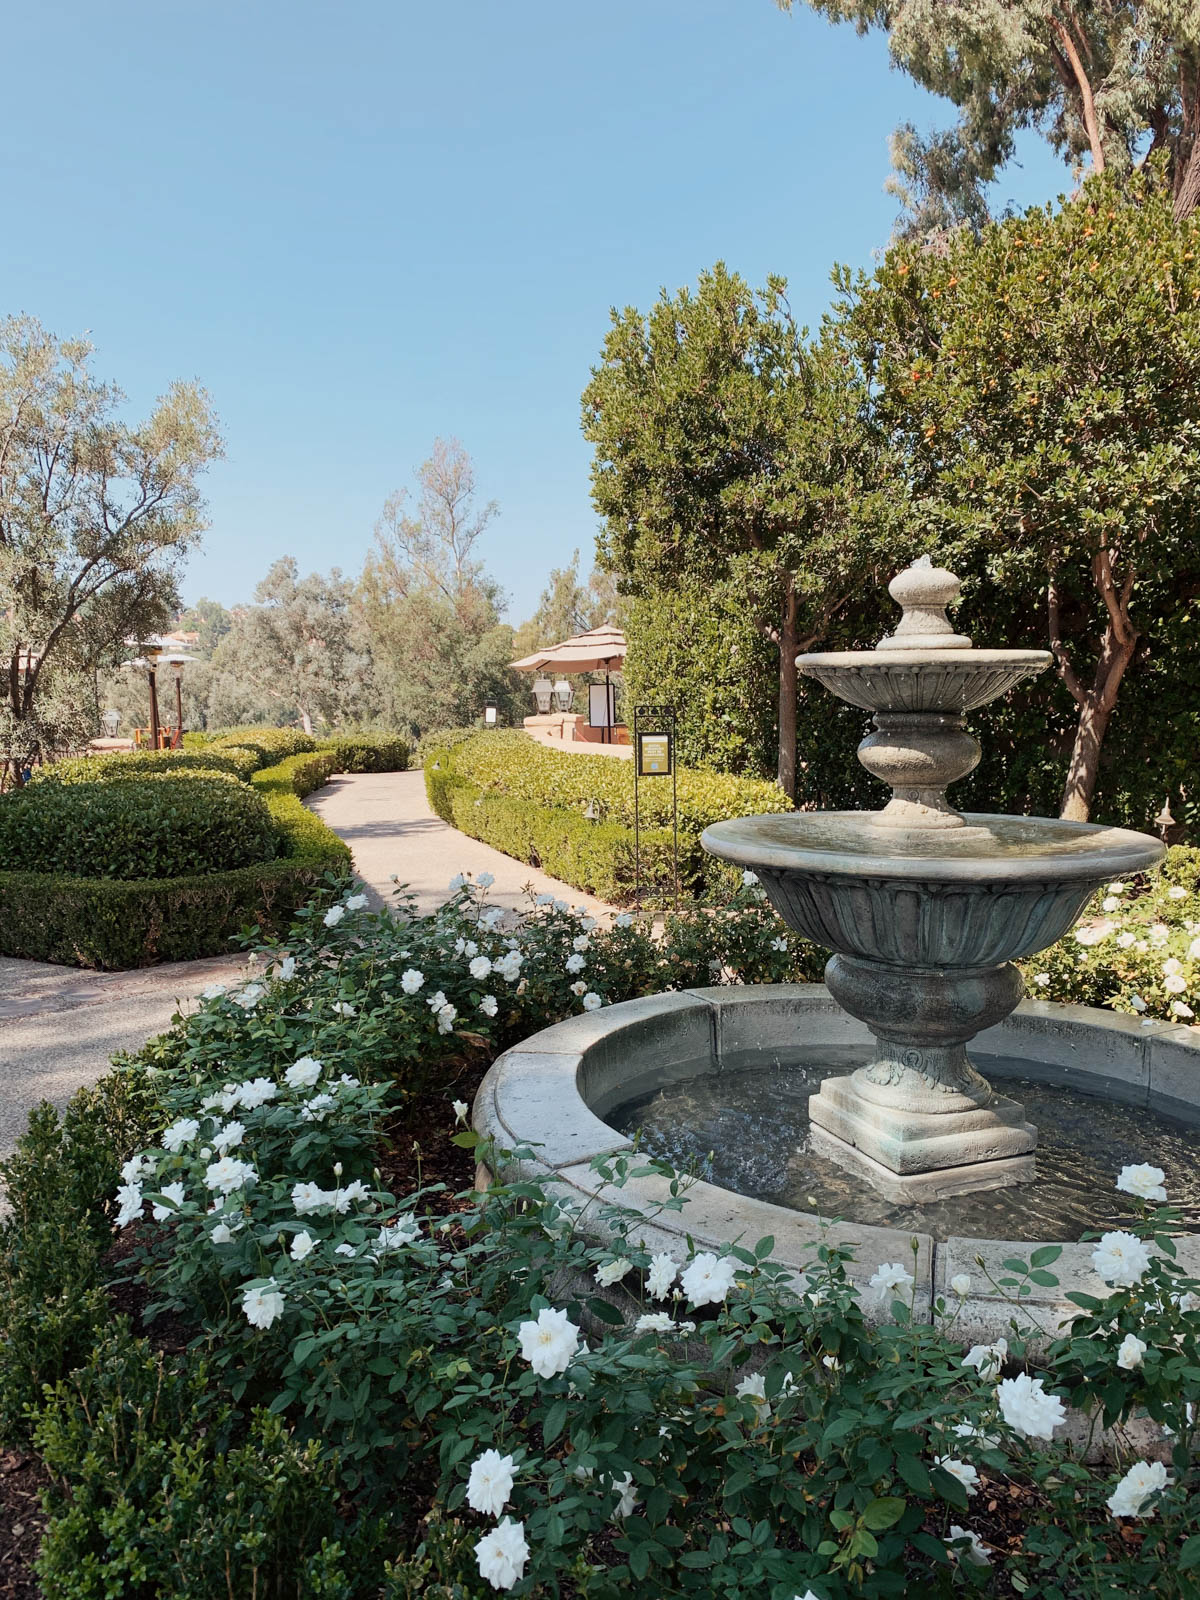 eatsleepwear goes on a family trip with toddler to Rancho Bernardo Inn fountain on property